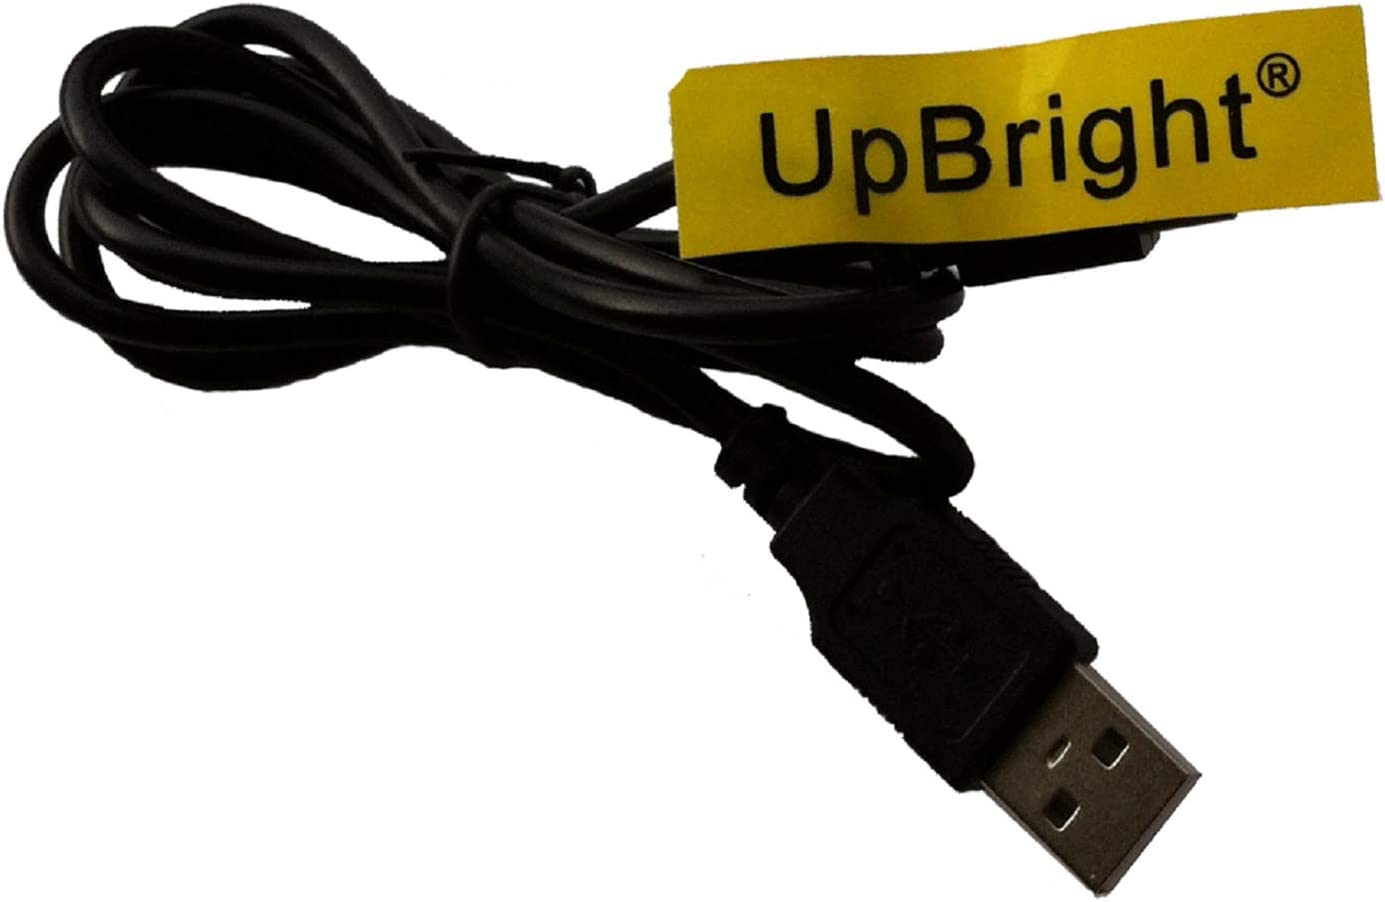 UpBright New USB Cable PC Laptop Data Sync Cord Lead Compatible with Neat Receipts NM-1000 NR-030108 322 346 3271 NeatReceipts Mobile Portable Scanner Digital Filing System Neat Receipts SCSA4601EU